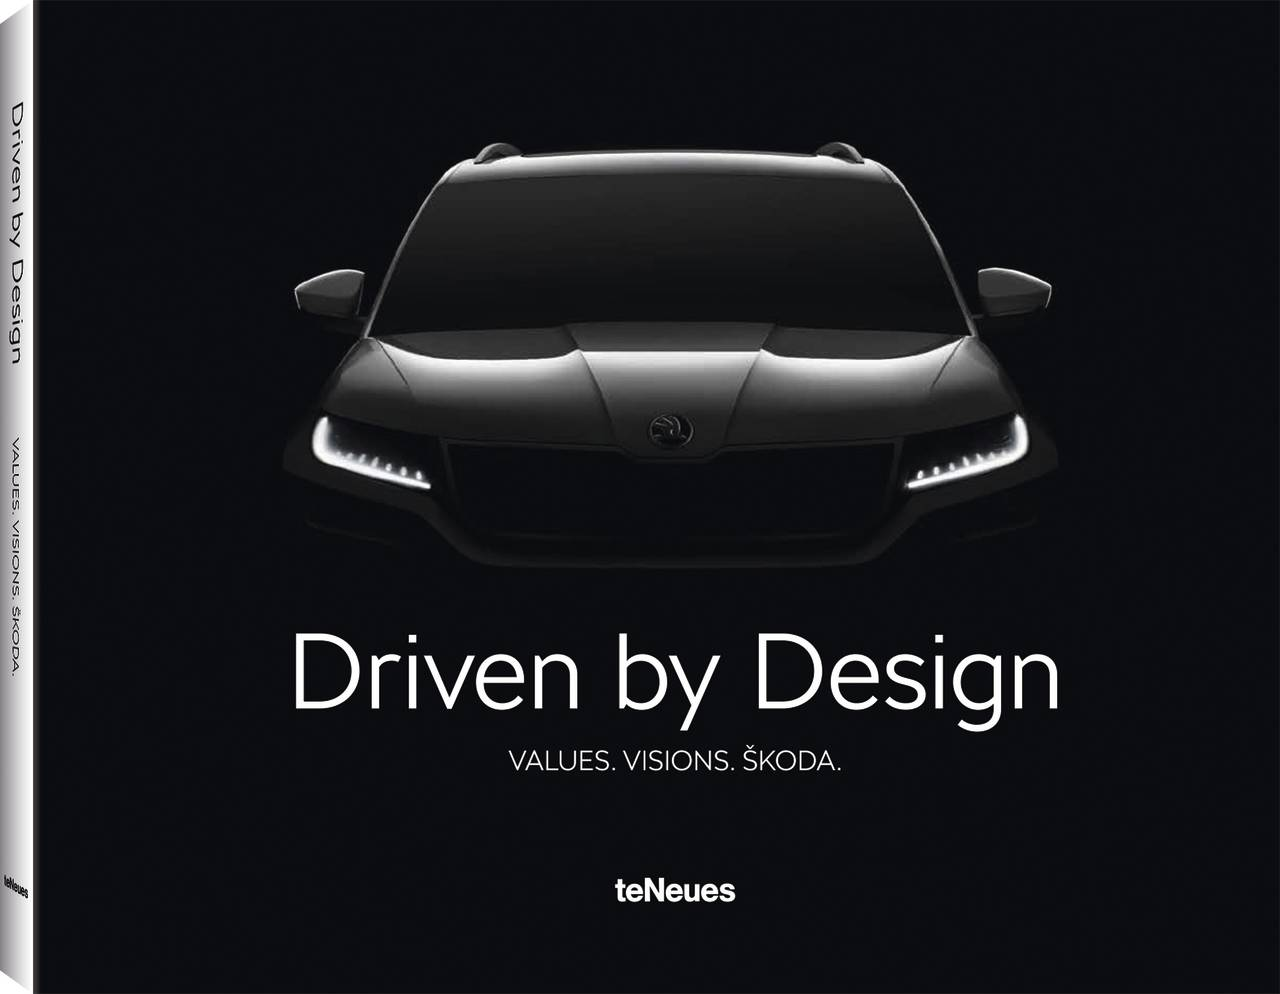 © Driven by Design - VALUES. VISIONS. ŠKODA. published by teNeues, www.teneues.com. ŠKODA KODIAQ, Photo © ŠKODA Auto, a.s.